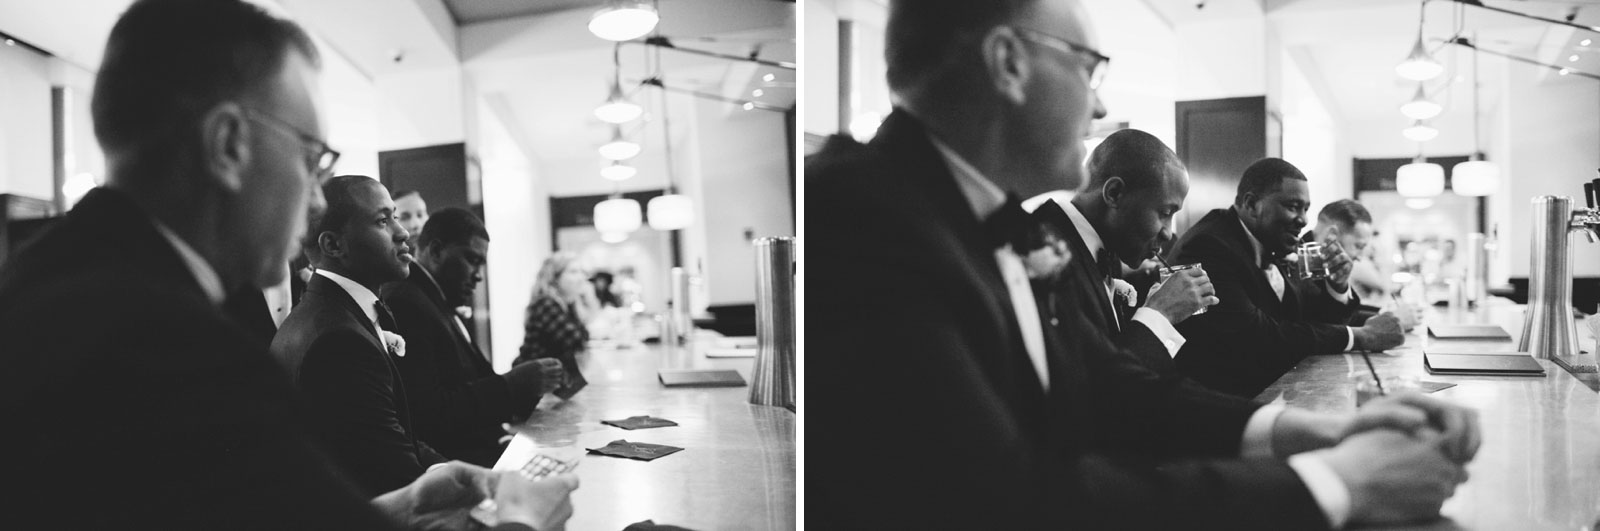 black and white shots of groomsmen ordering drinks at the hotel bar at the Ritz-Carlton Boston